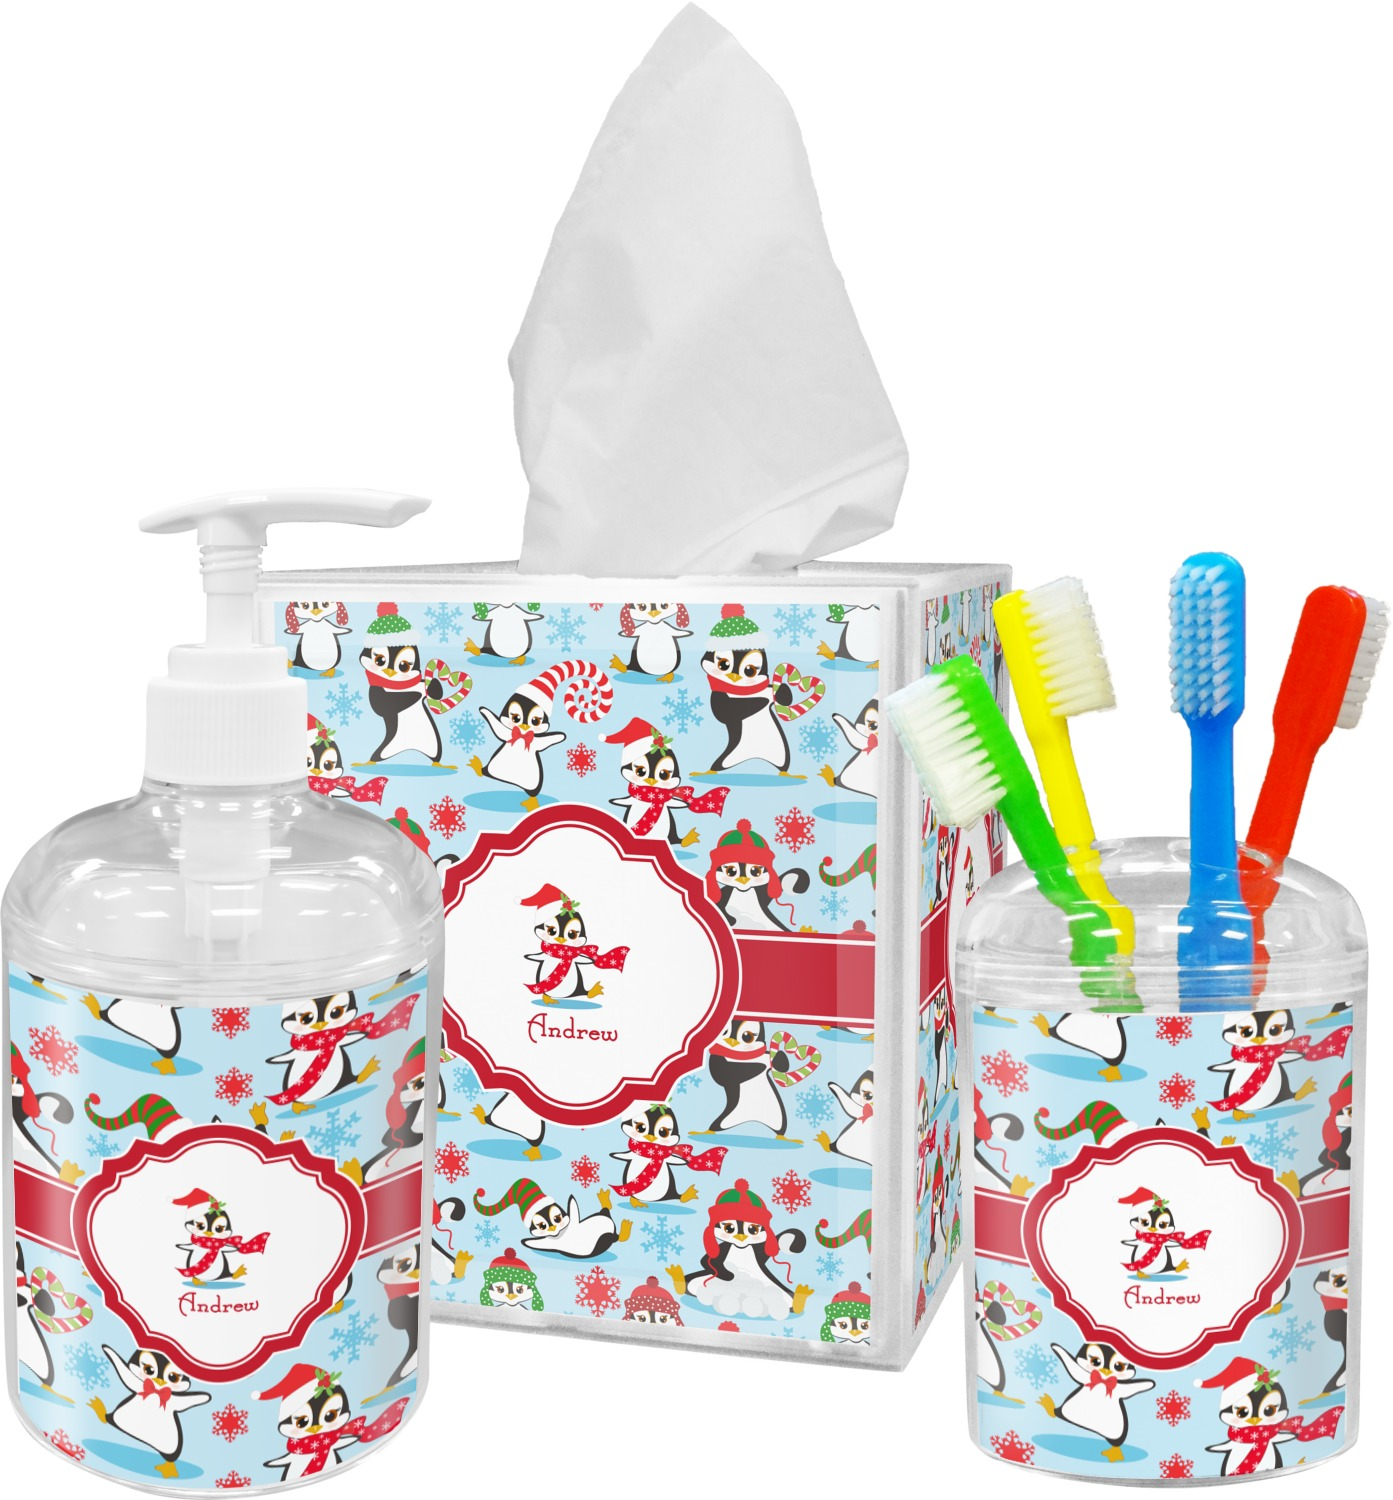 Christmas penguins bathroom accessories set personalized - Monogrammed bathroom accessories ...